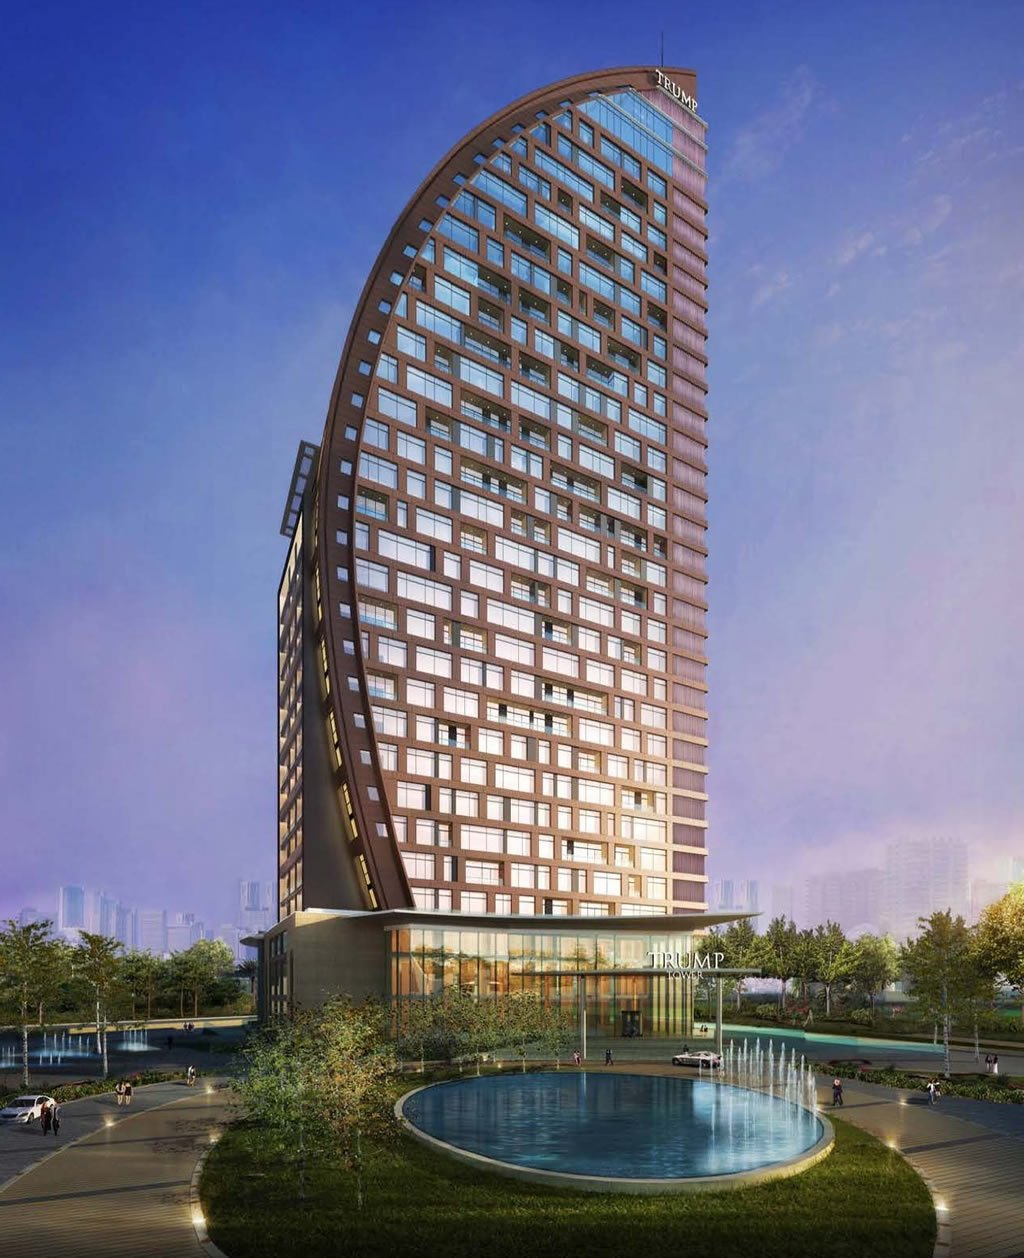 The Trump Hotel – all ready to make Baku its home